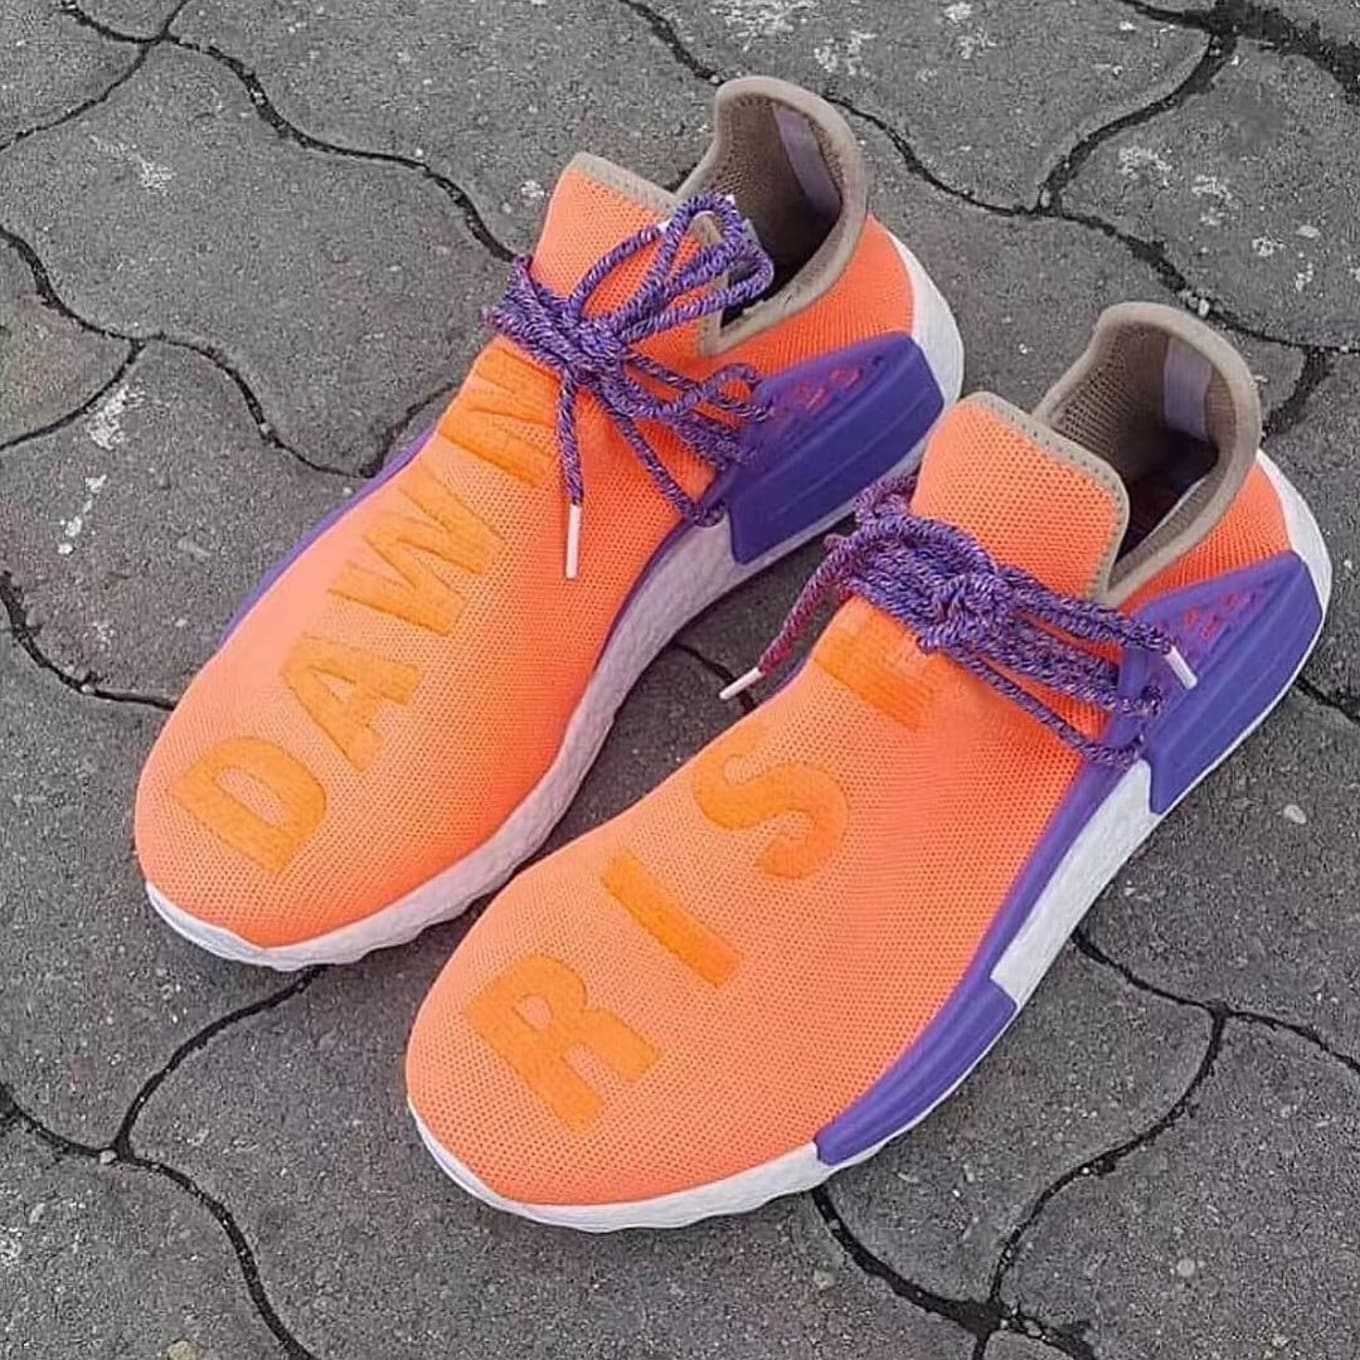 competitive price d8a78 c9452 Orange and Purple Featured on Unreleased Pharrell Adidas NMD.